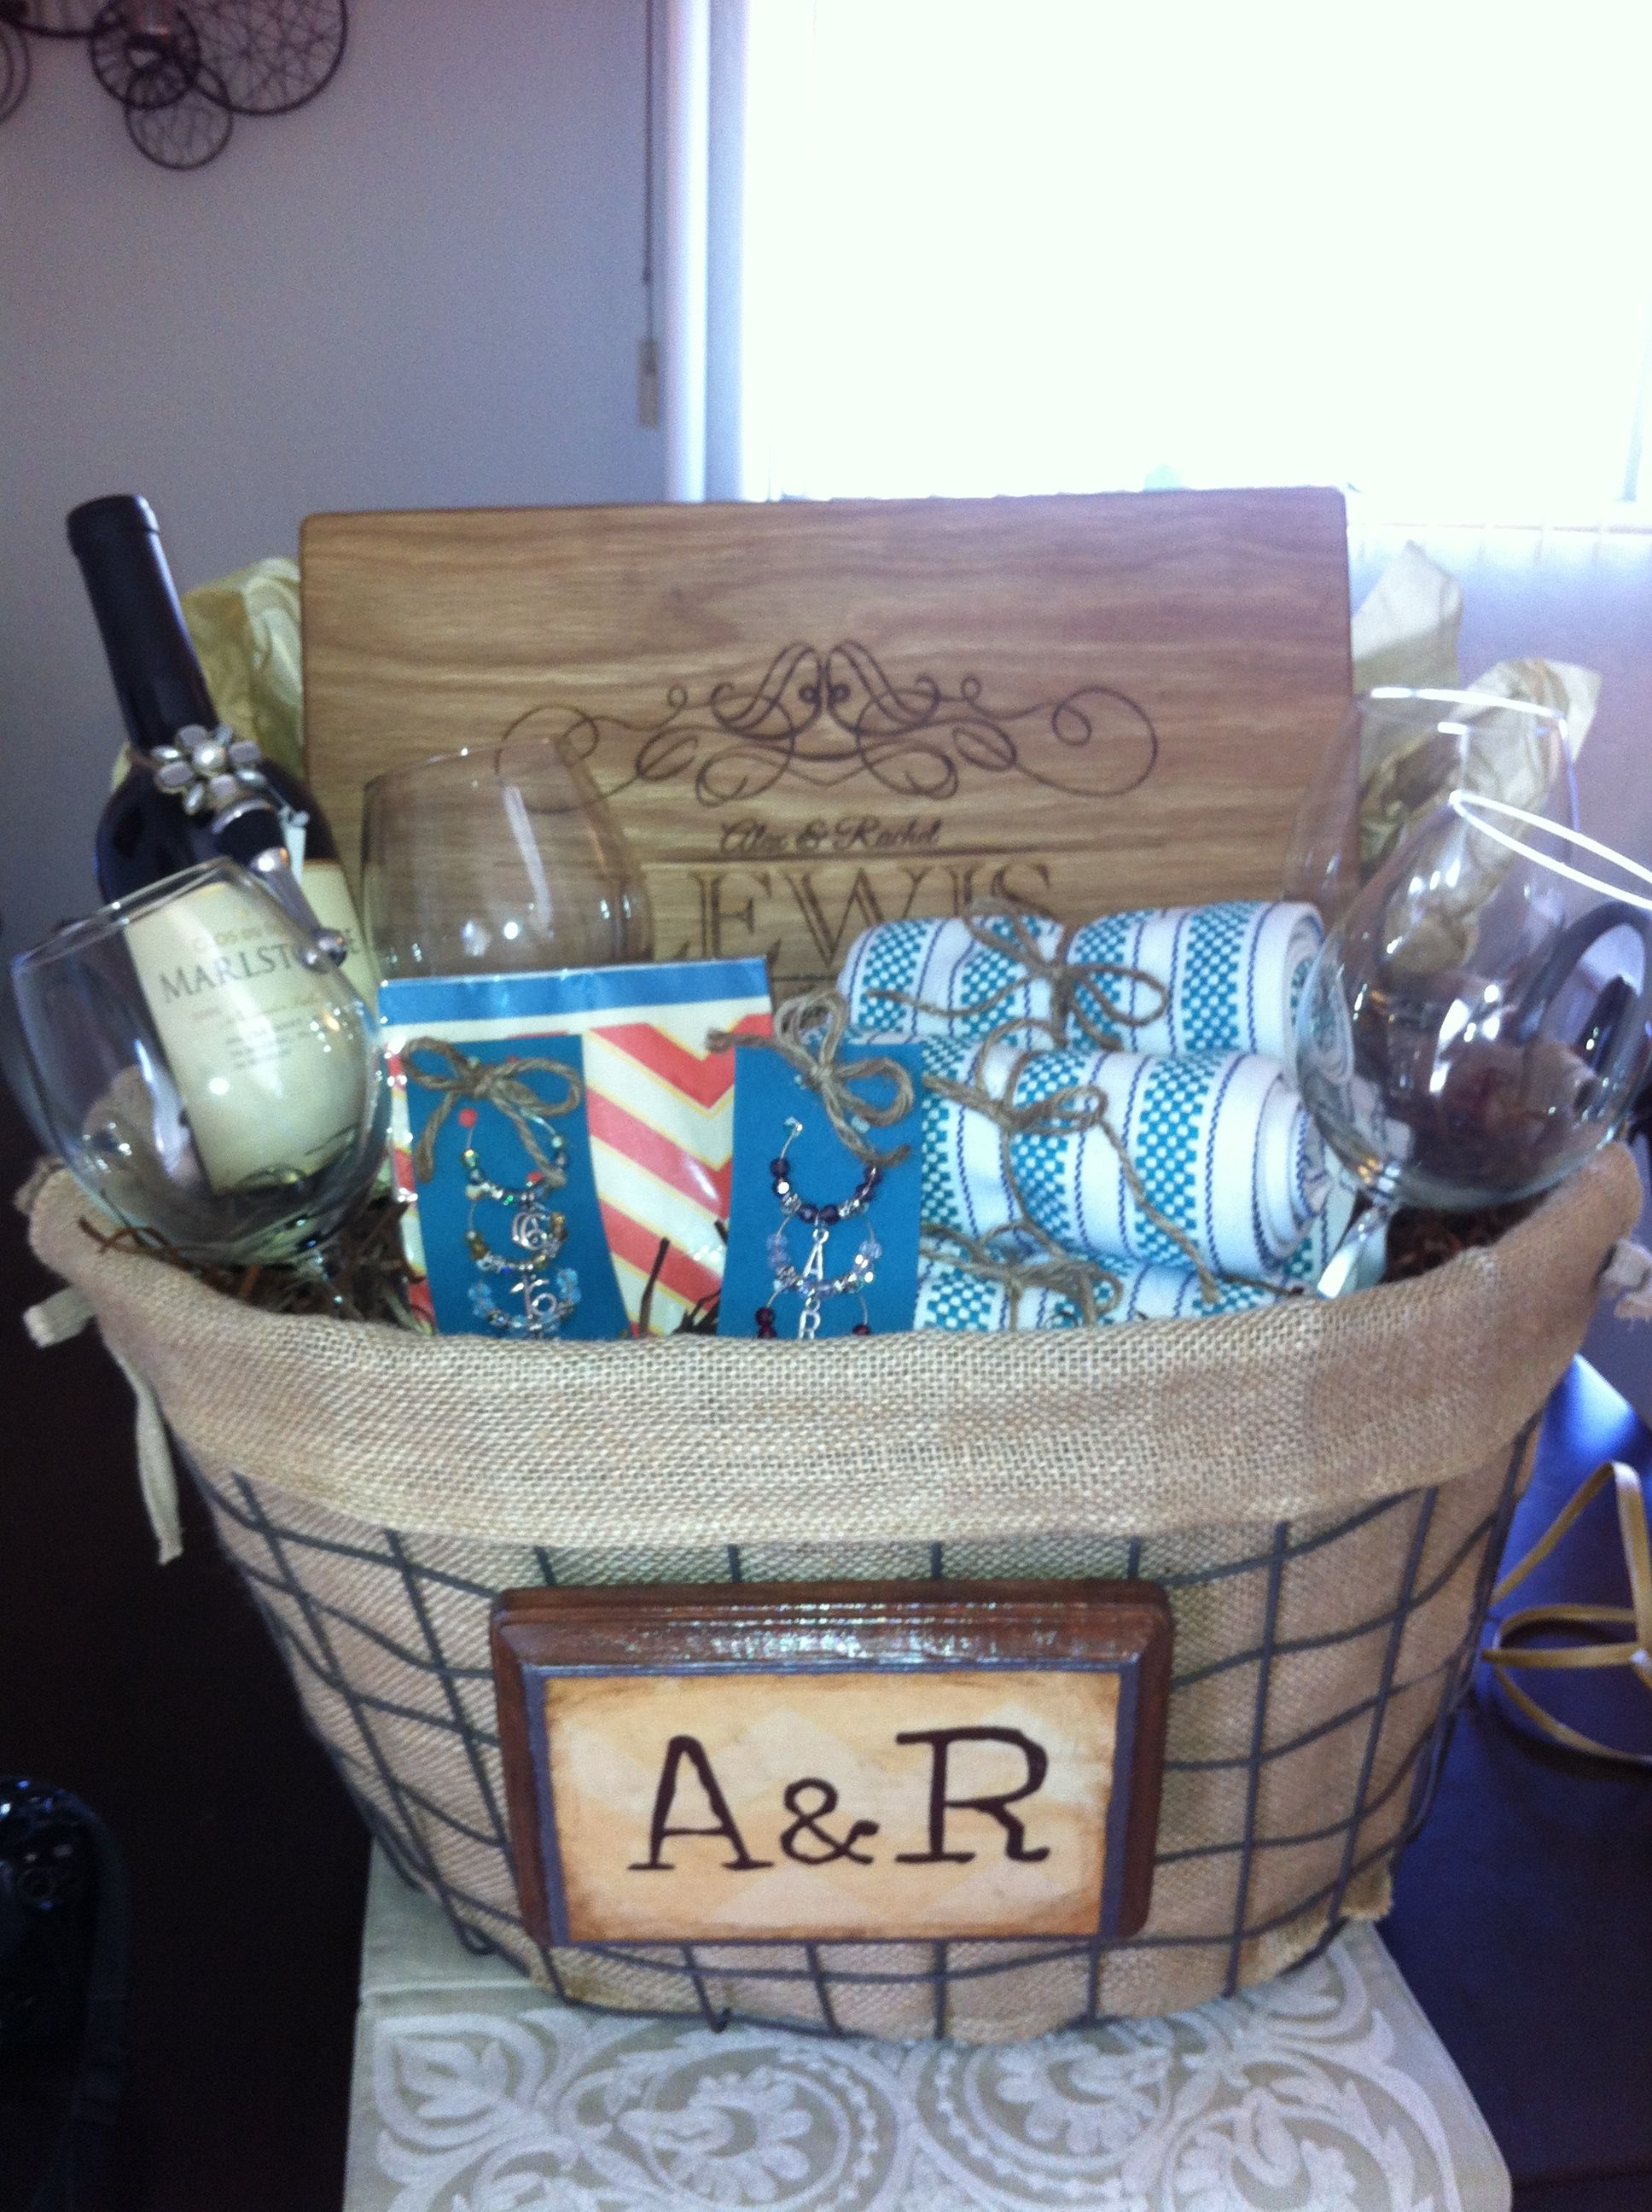 How To Make Wedding Gift Basket : ... gift baskets wedding gift baskets bridal shower gifts bridal gifts